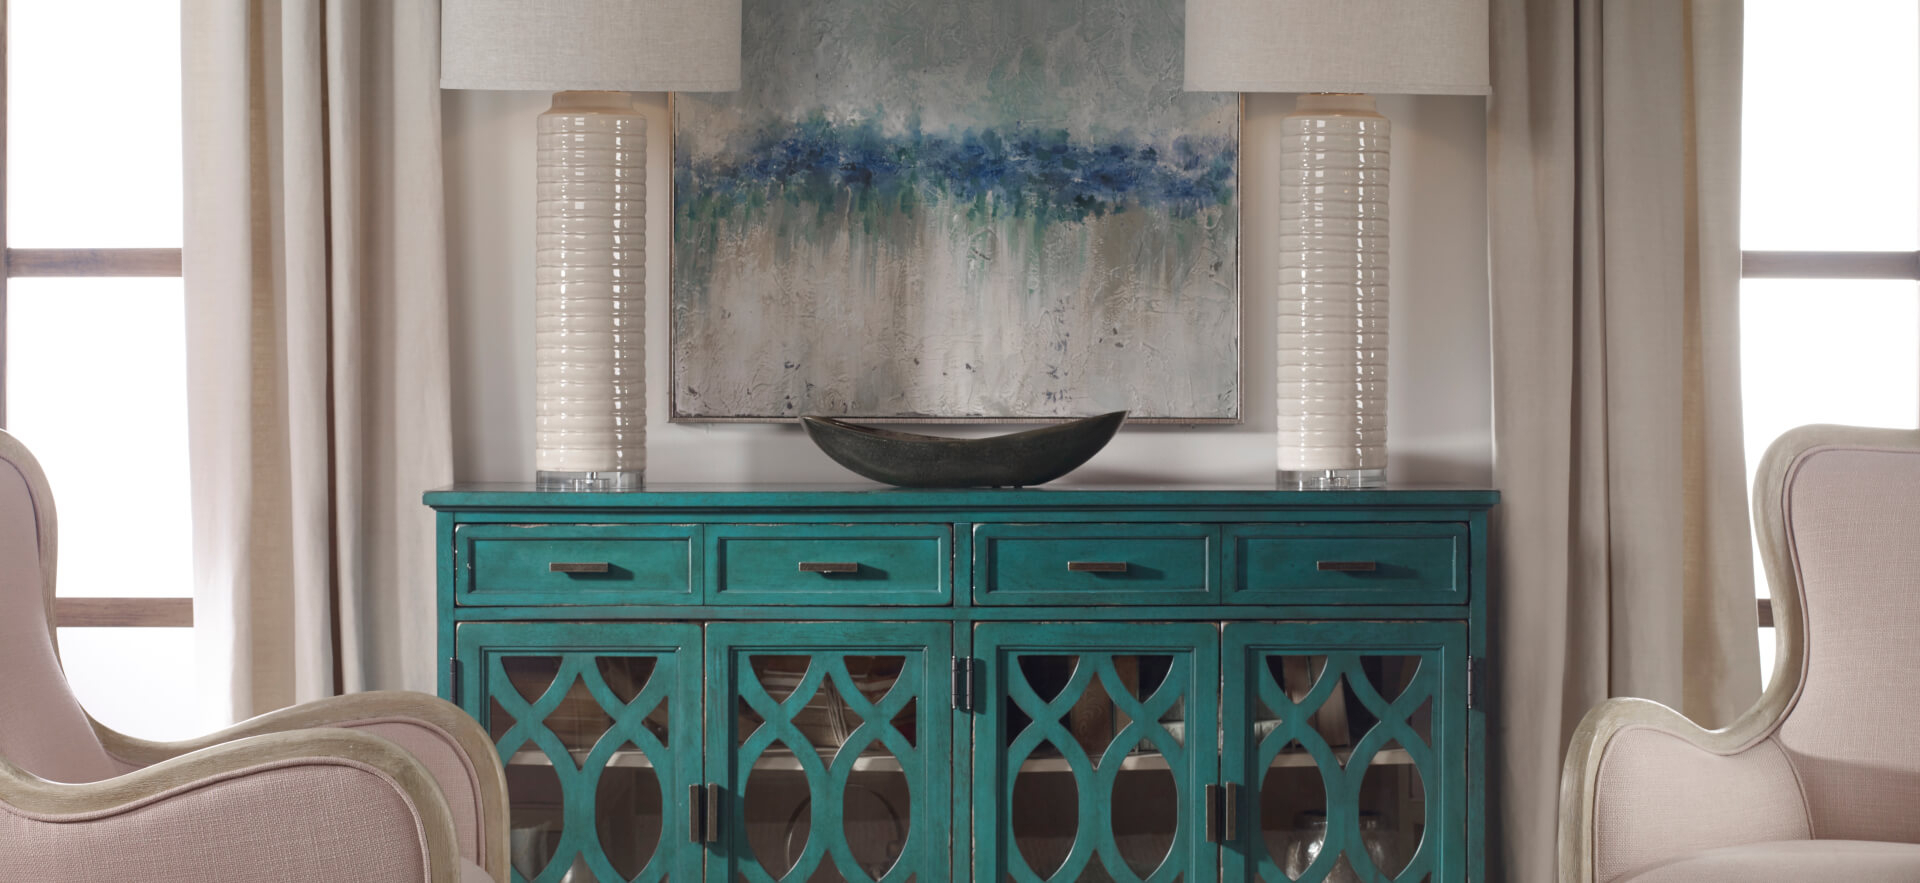 Wholesale Uttermost Accent Furniture, Mirrors, Wall Decor With Contemporary Geometric Wall Decor (View 30 of 30)